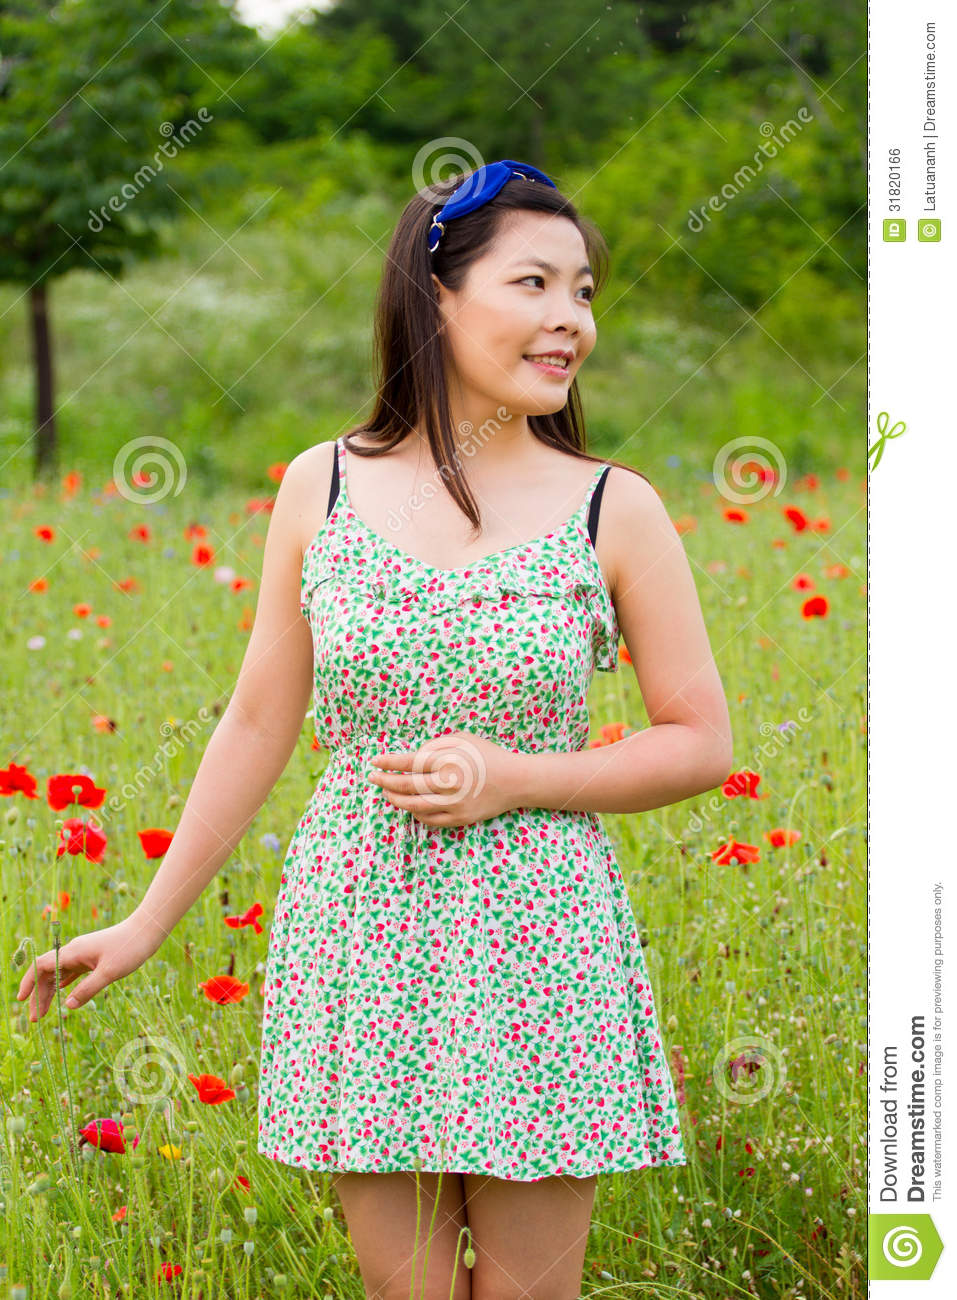 Girl with blue band stands in poppy field